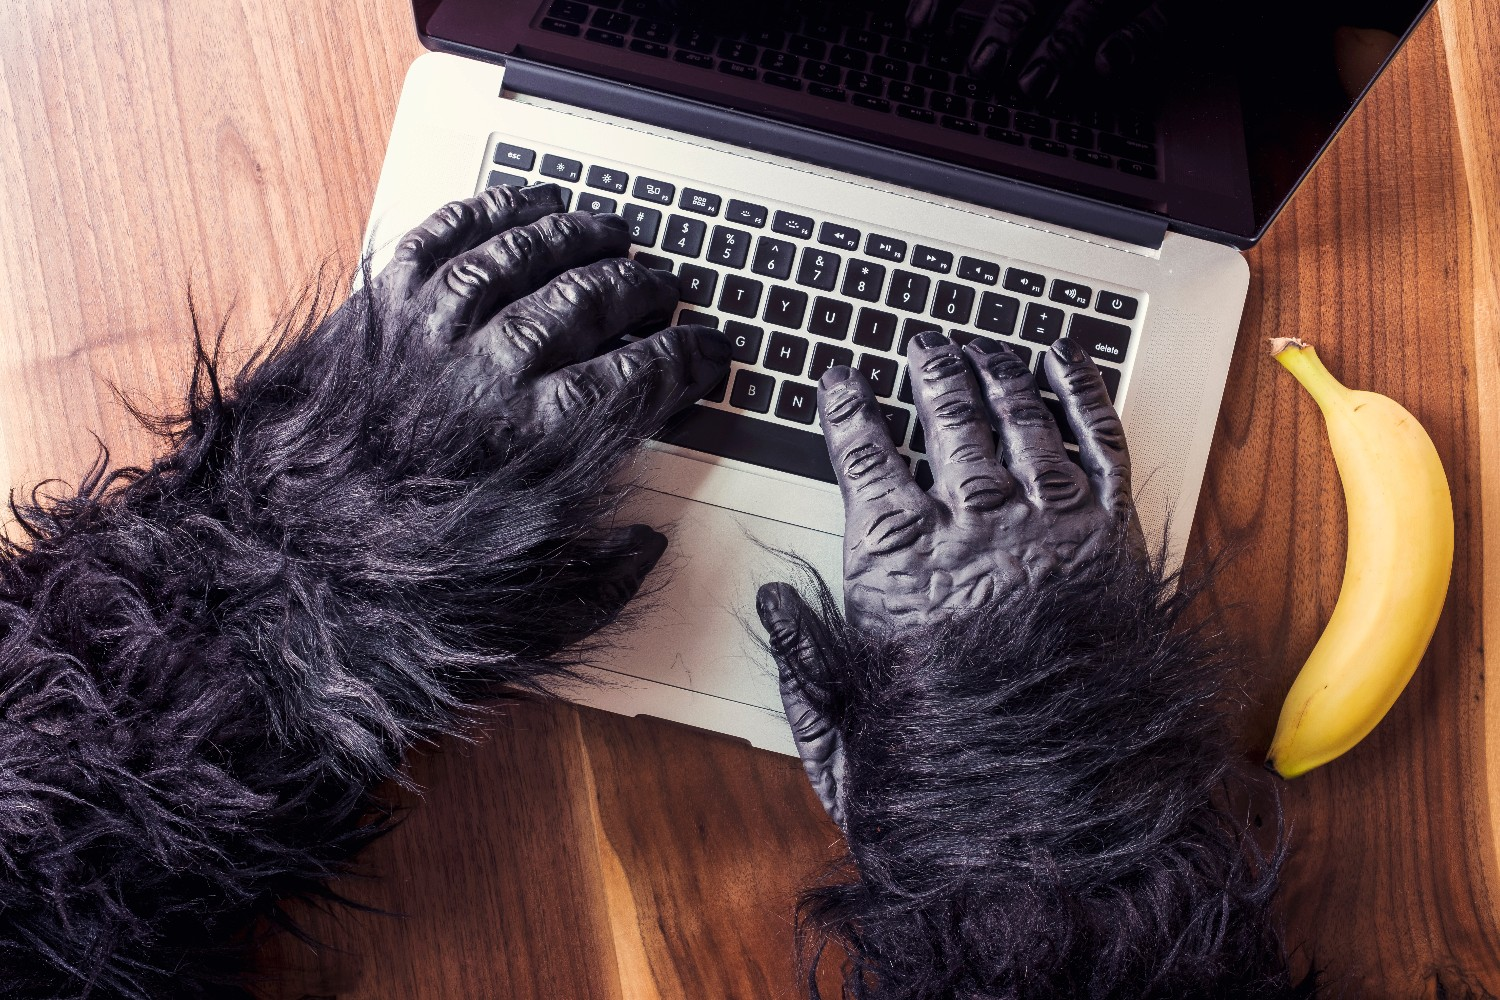 gorilla hands on keyboard virtual assistant - Edited